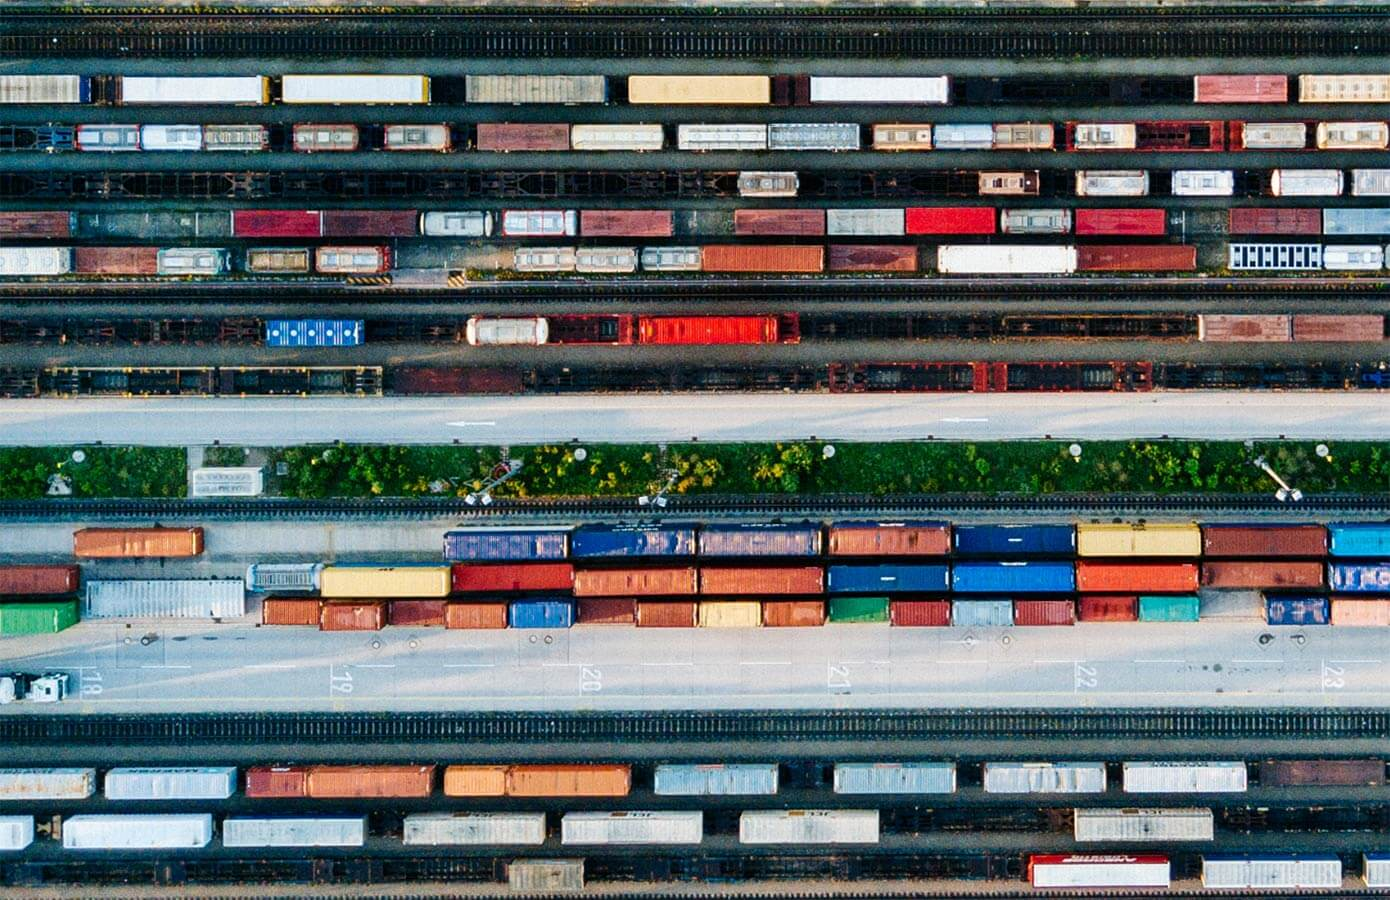 An active, efficient railyard from above